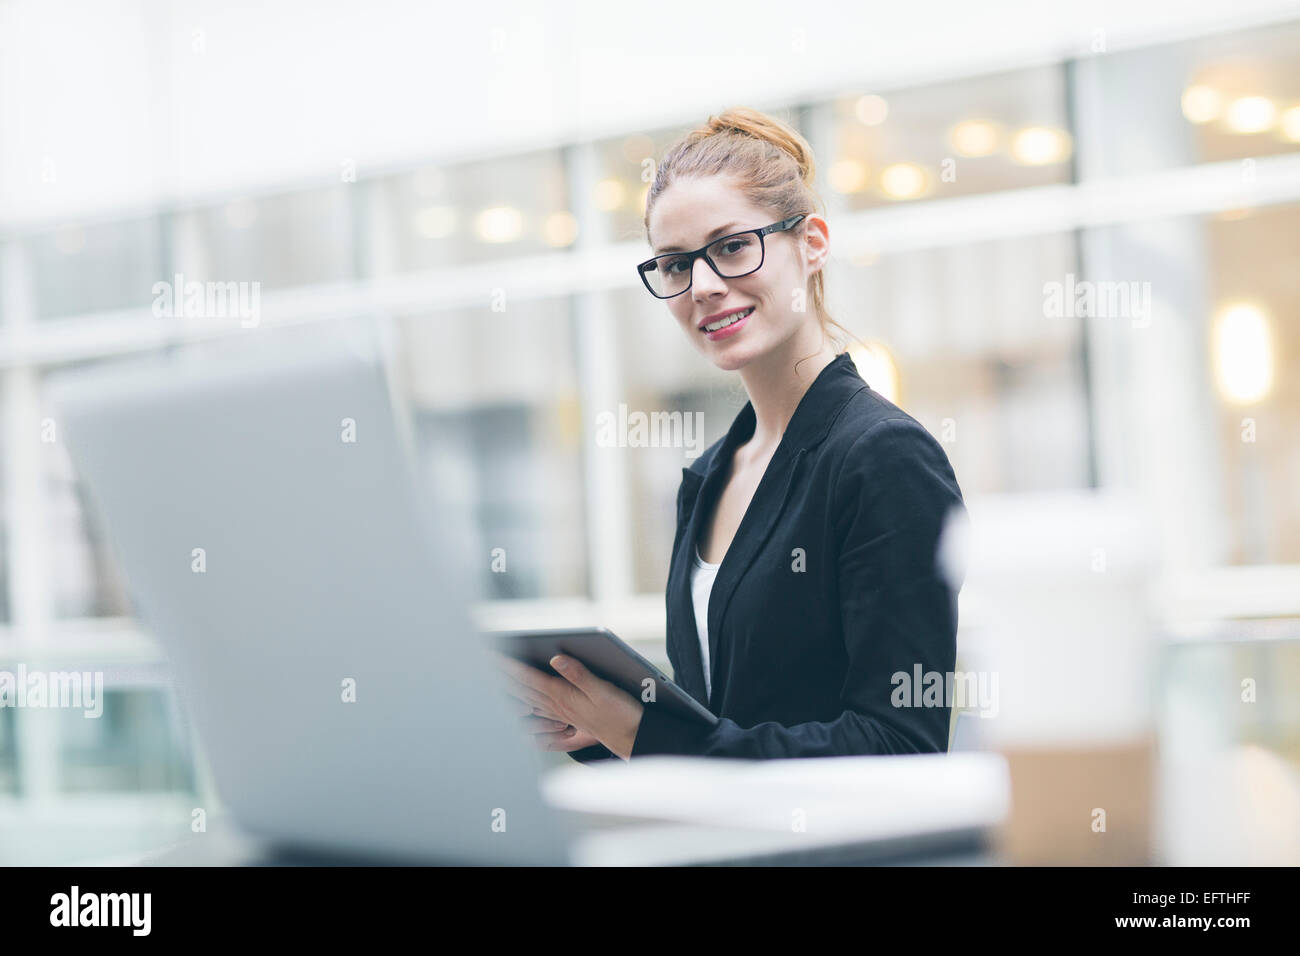 Portrait of businesswoman Photo Stock